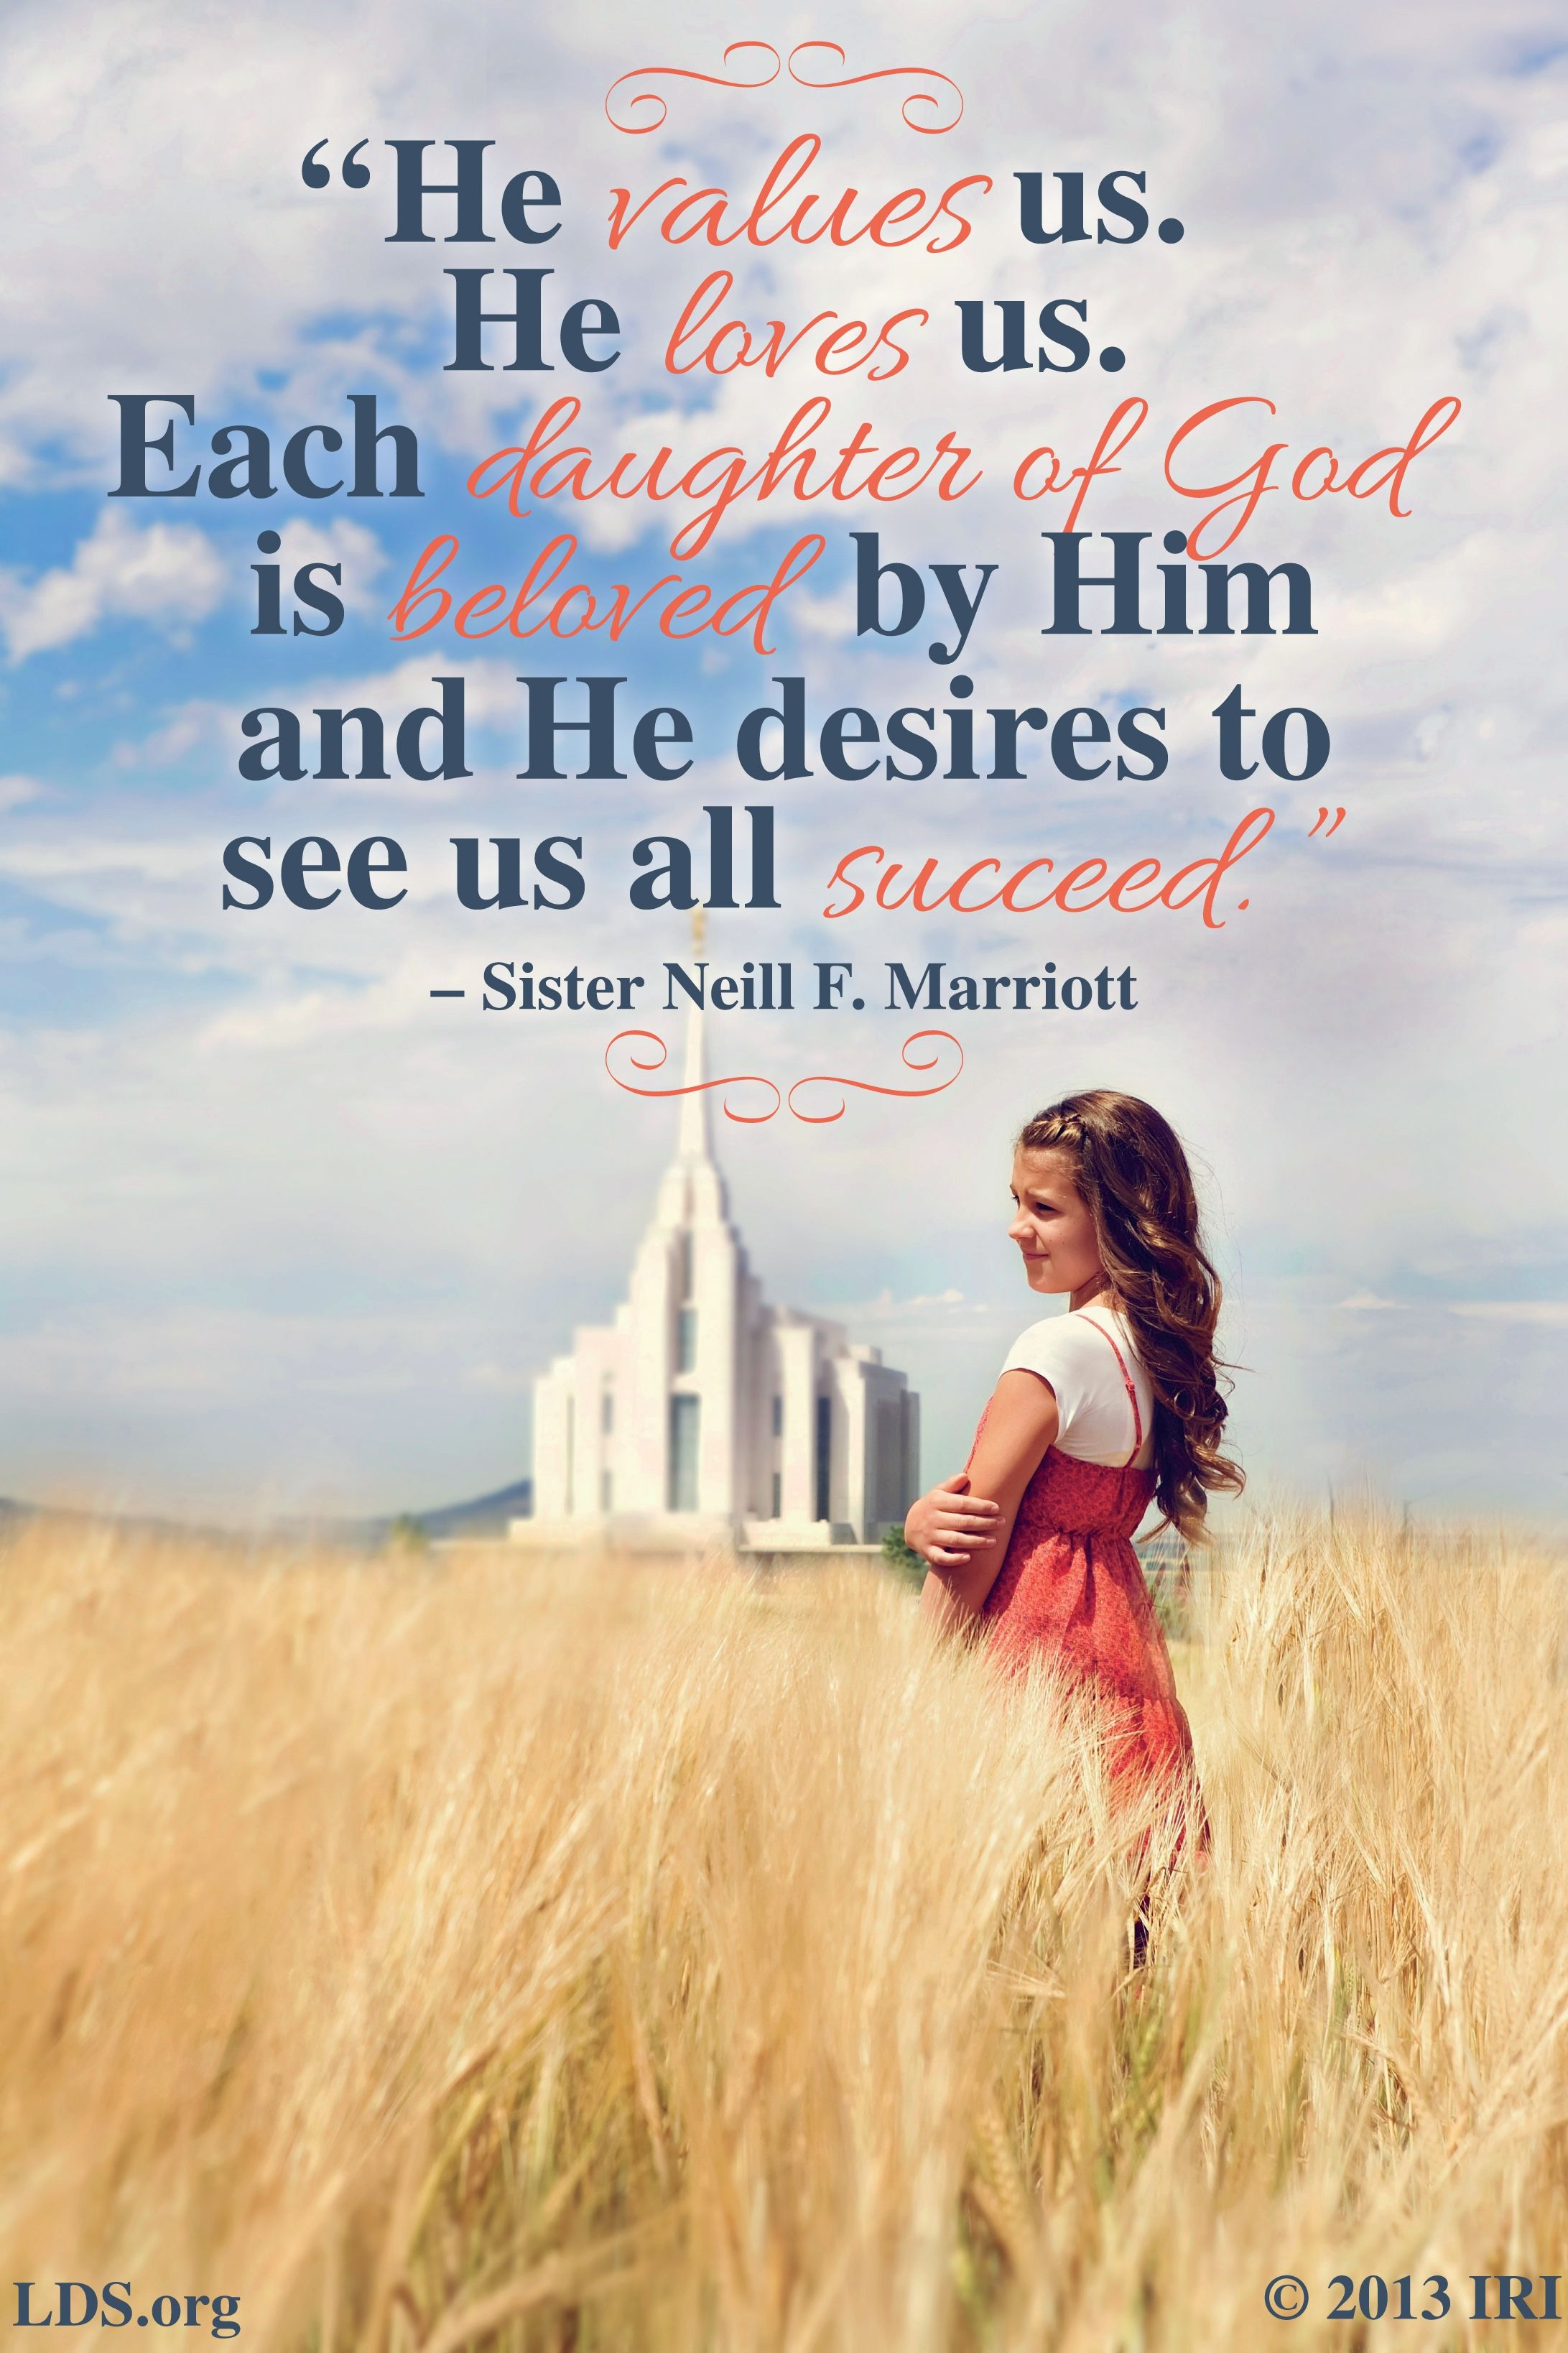 """""""He values us. He loves us. Each daughter of God is beloved by Him and He desires to see us all succeed.""""—Sister Neill F. Marriott, """"'Elect' Young Women Important to Work of Salvation"""""""